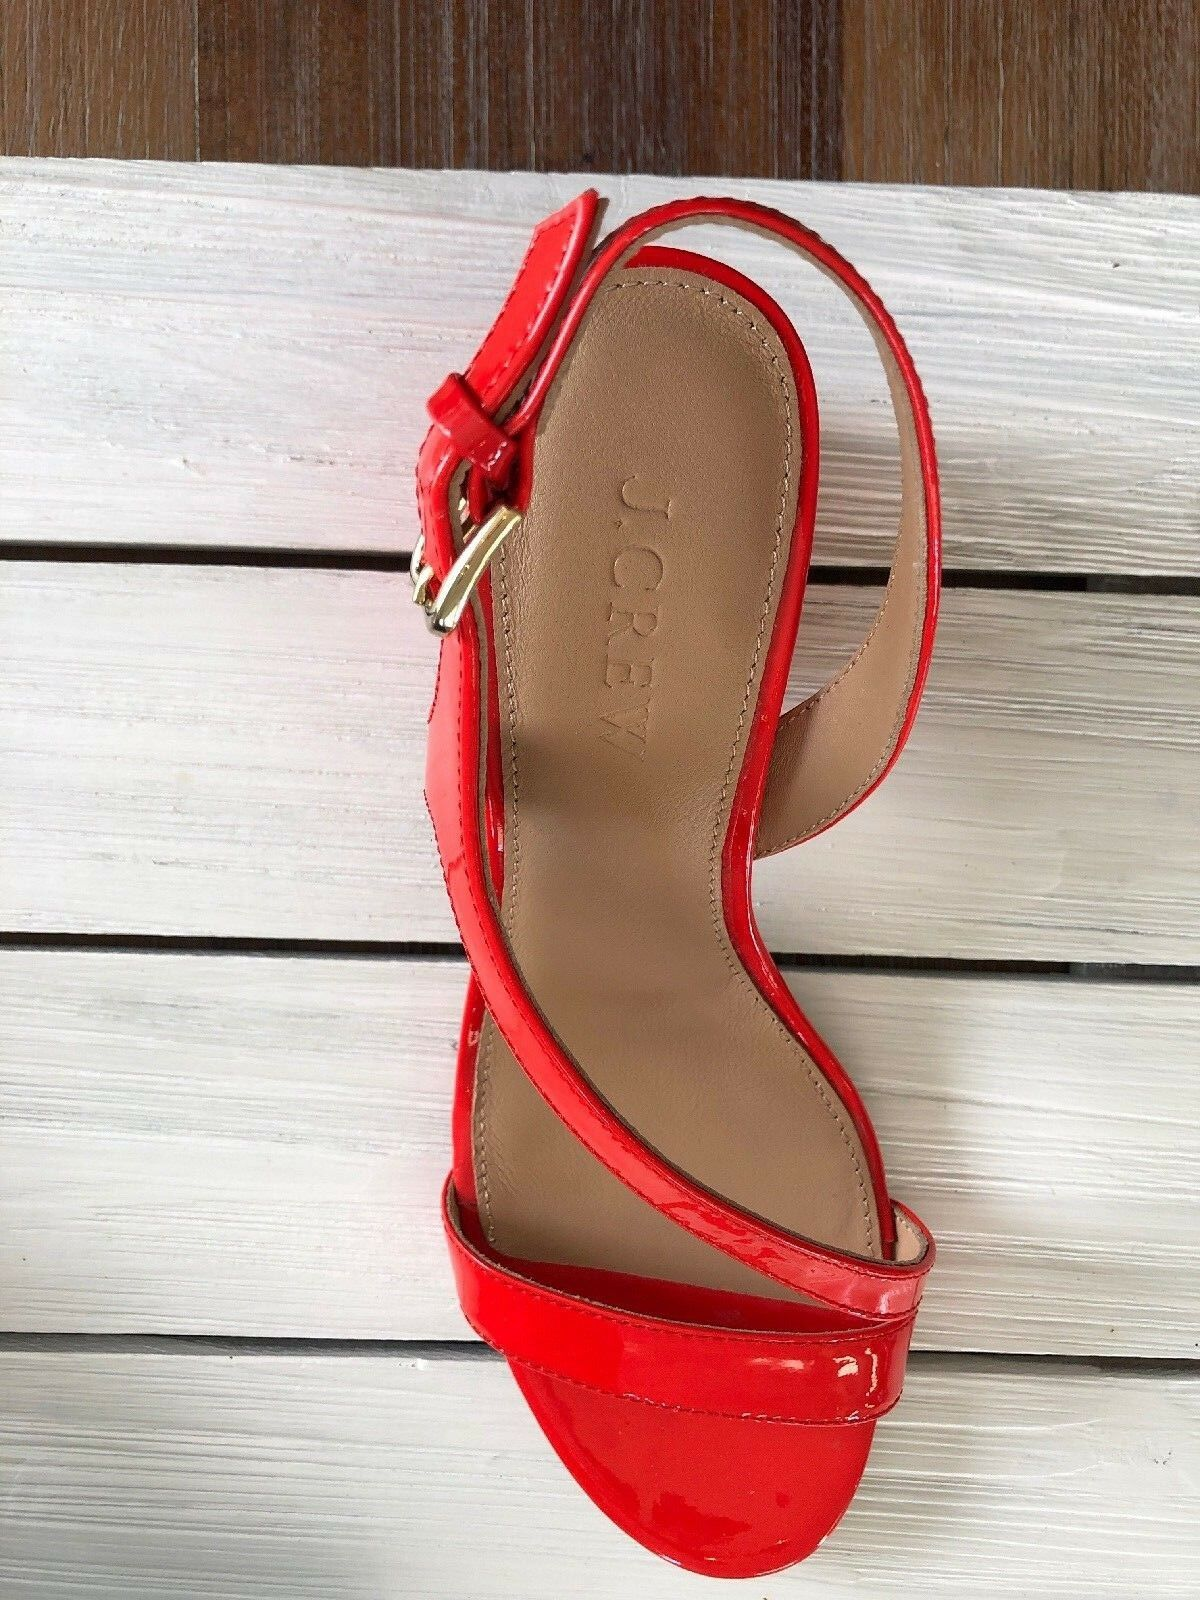 J Crew Asymmetrical Strappy Sandals Sandals Sandals (60mm) Patent Leather Glazed arancia Sz 5.5 6110d1